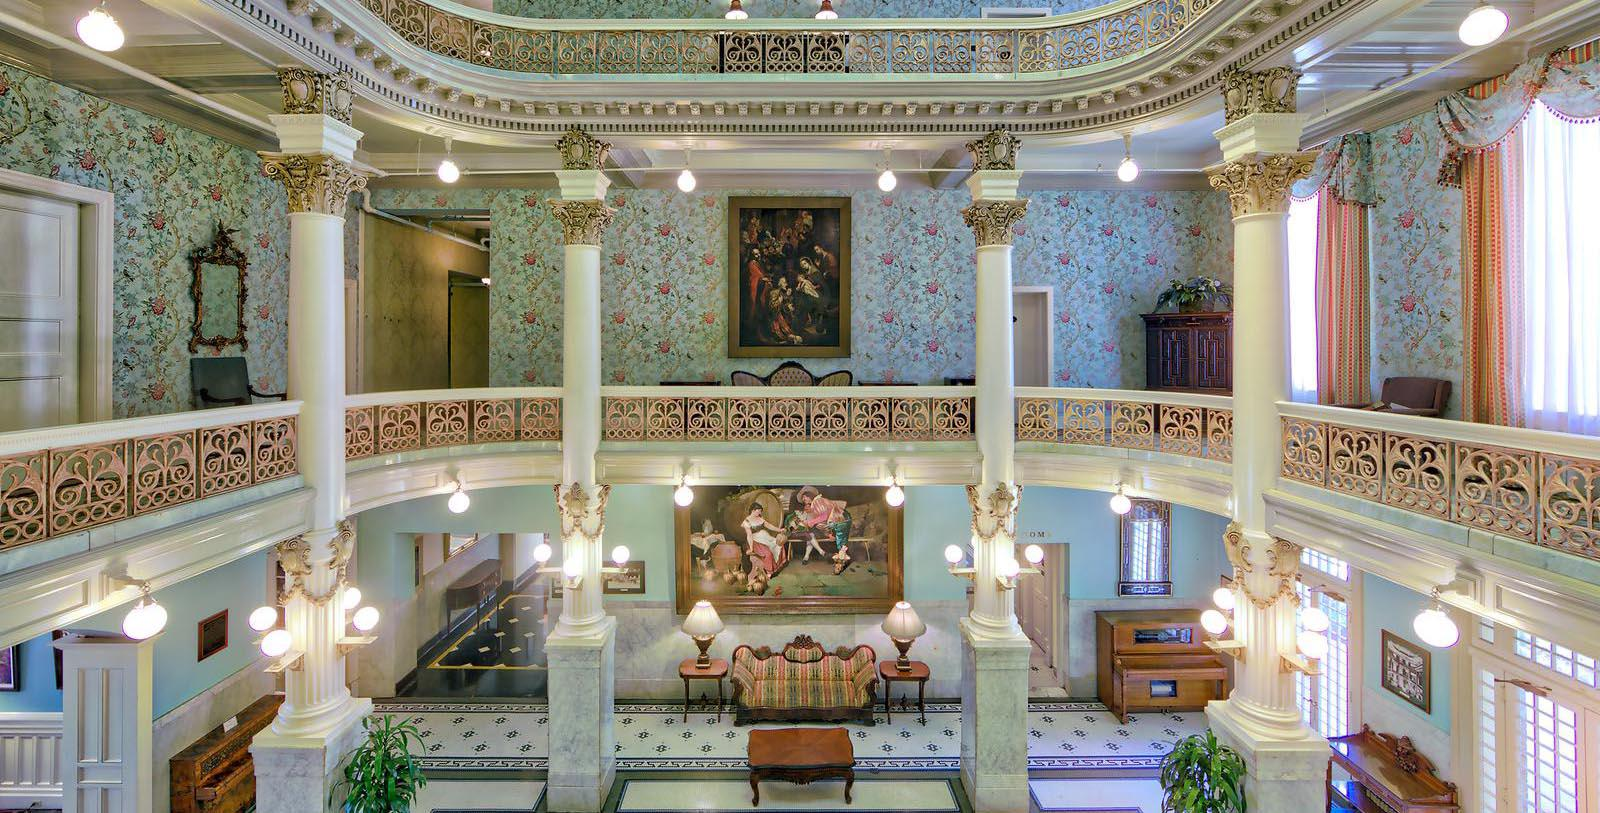 Image of Hotel Lobby at The Menger Hotel, 1859, Member of Historic Hotels of America, in San Antonio, Texas, Overview